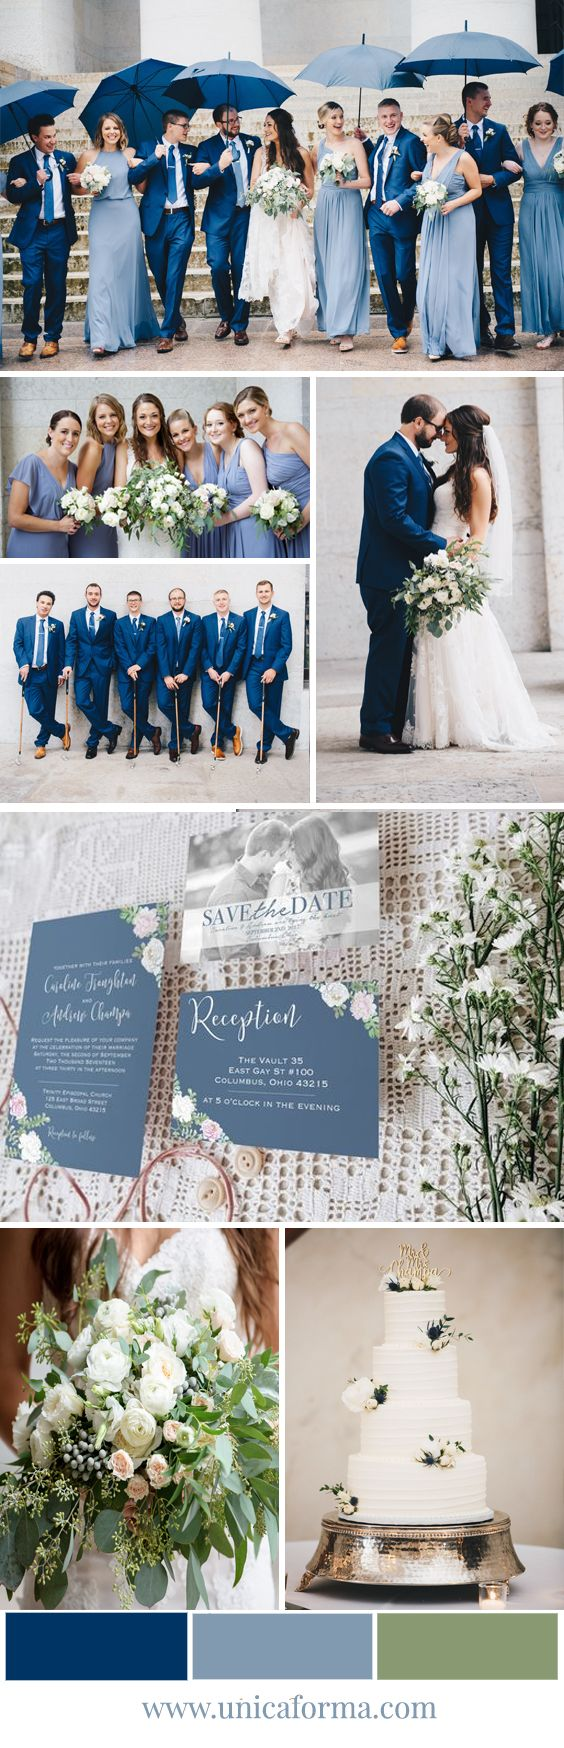 Dusty blue wedding. Navy blue wedding. French blue wedding. Shades of blue. Rainy wedding. Black tie wedding. White wedding bouquet. Greenery wedding. Soft blue wedding palette. Wedding Etiquette. How to host a bridal shower. Budget wedding. Cheap wedding invitations. Classy wedding invitations. Timeless wedding invitations. Greenery bouquet with white flowers. Photo save the dates. White wedding cake